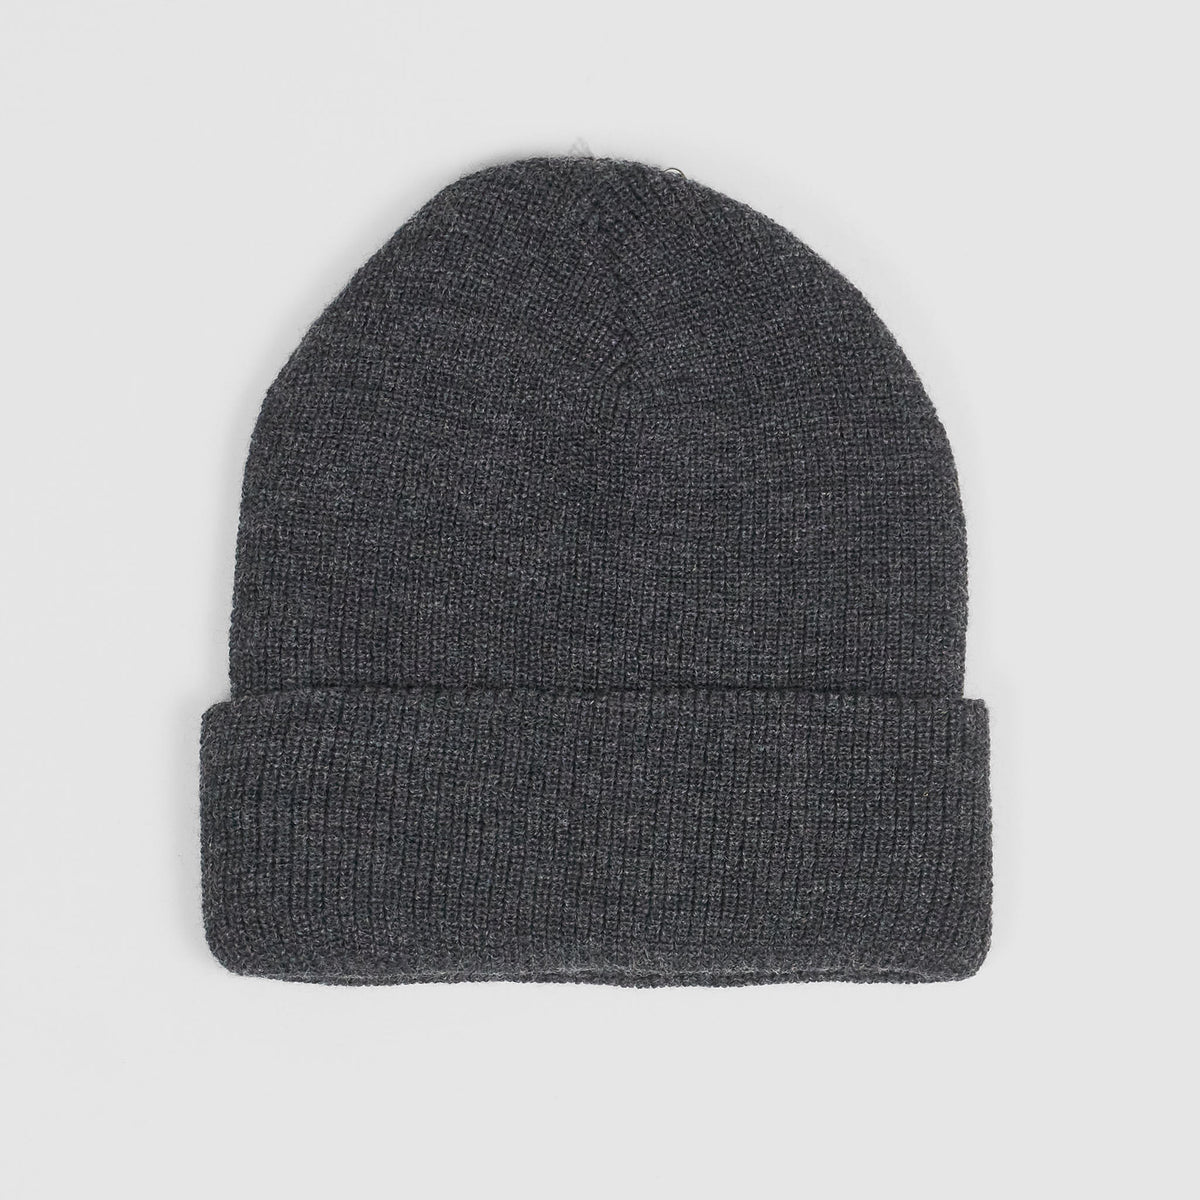 H.W. Dog & Co Wool Knit Watch Cap